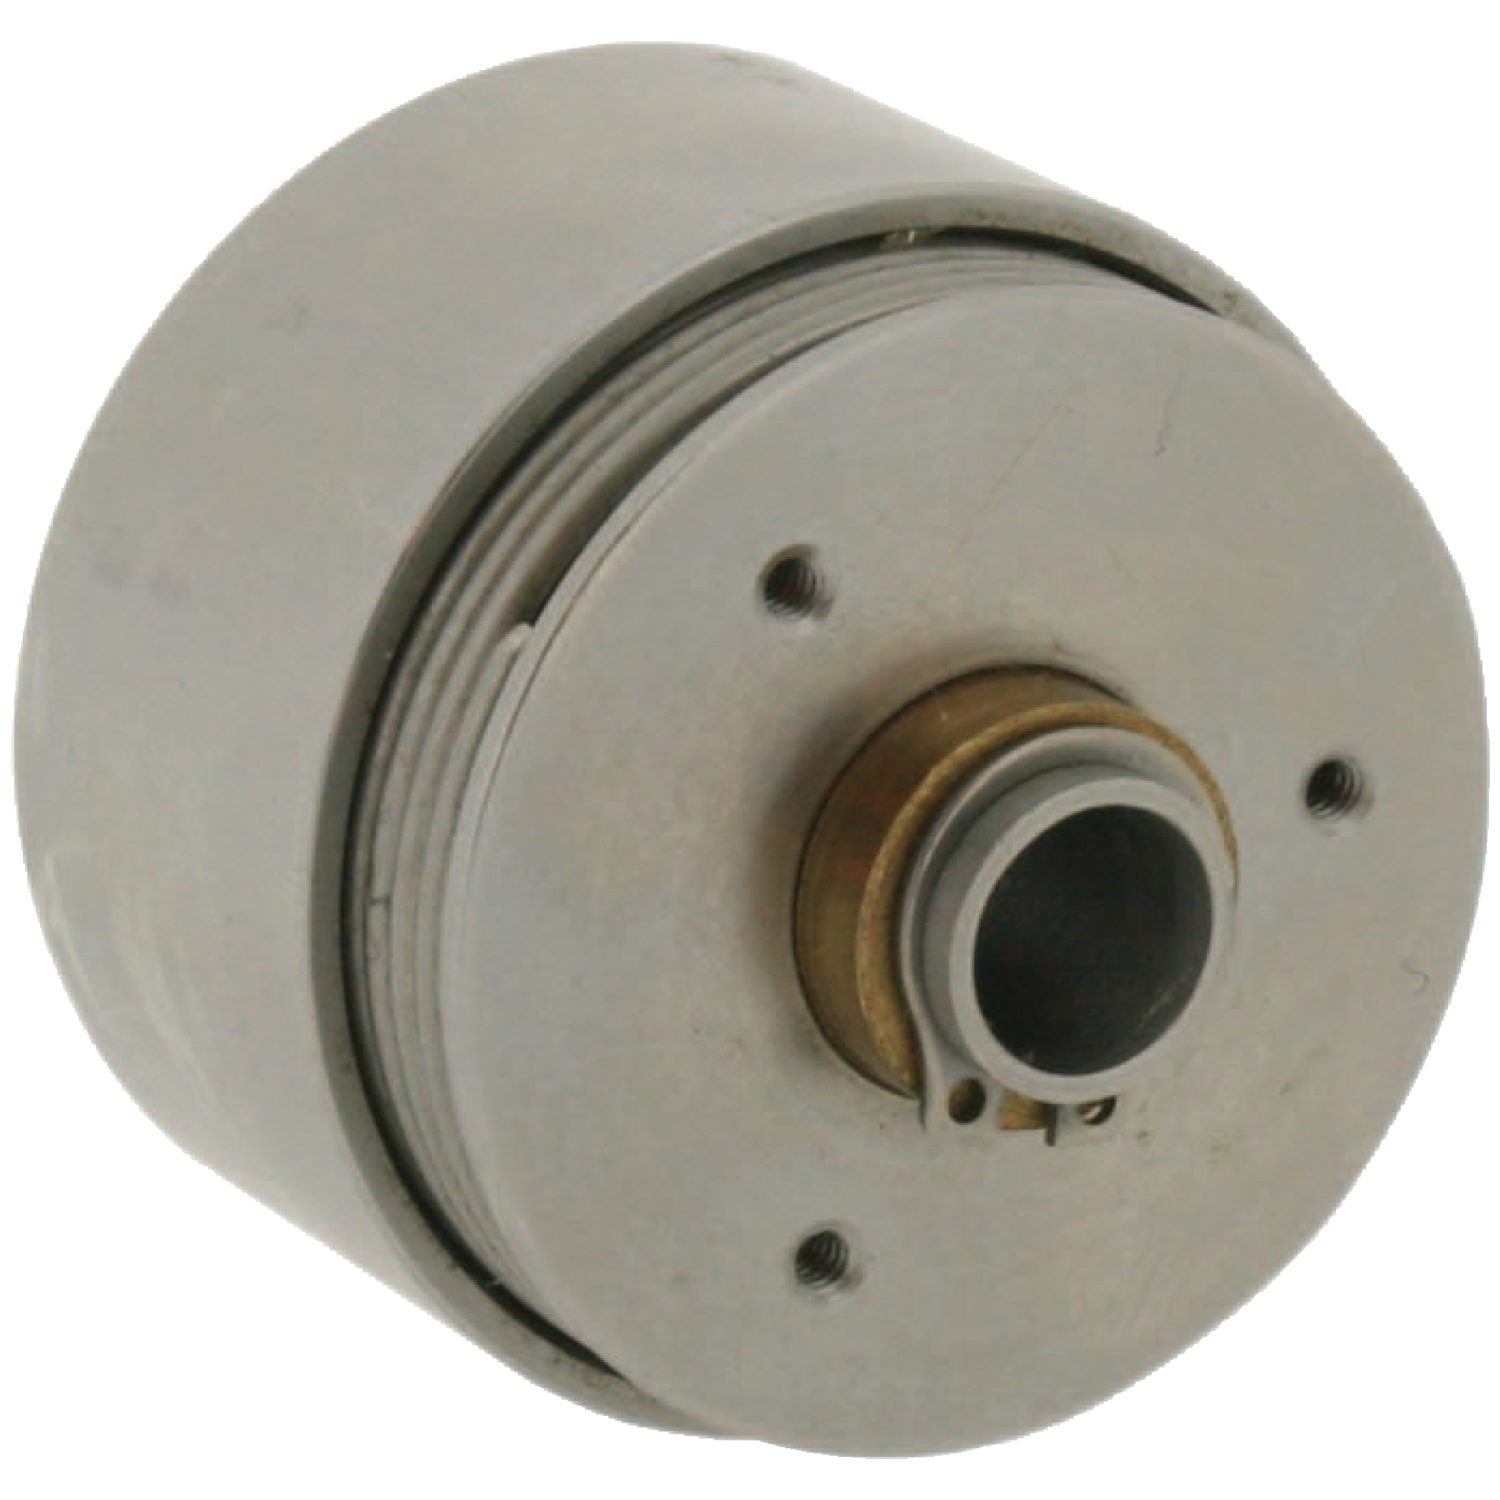 R3096.1 - Slip clutches and slip couplings